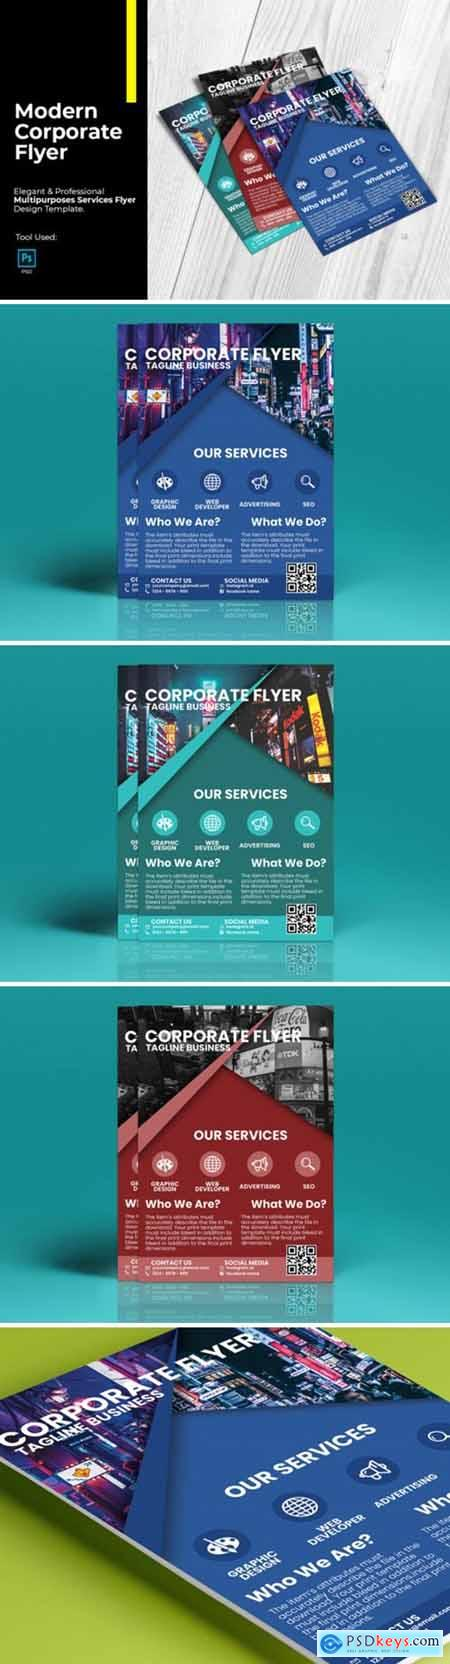 Modern Corporate Flyer Design